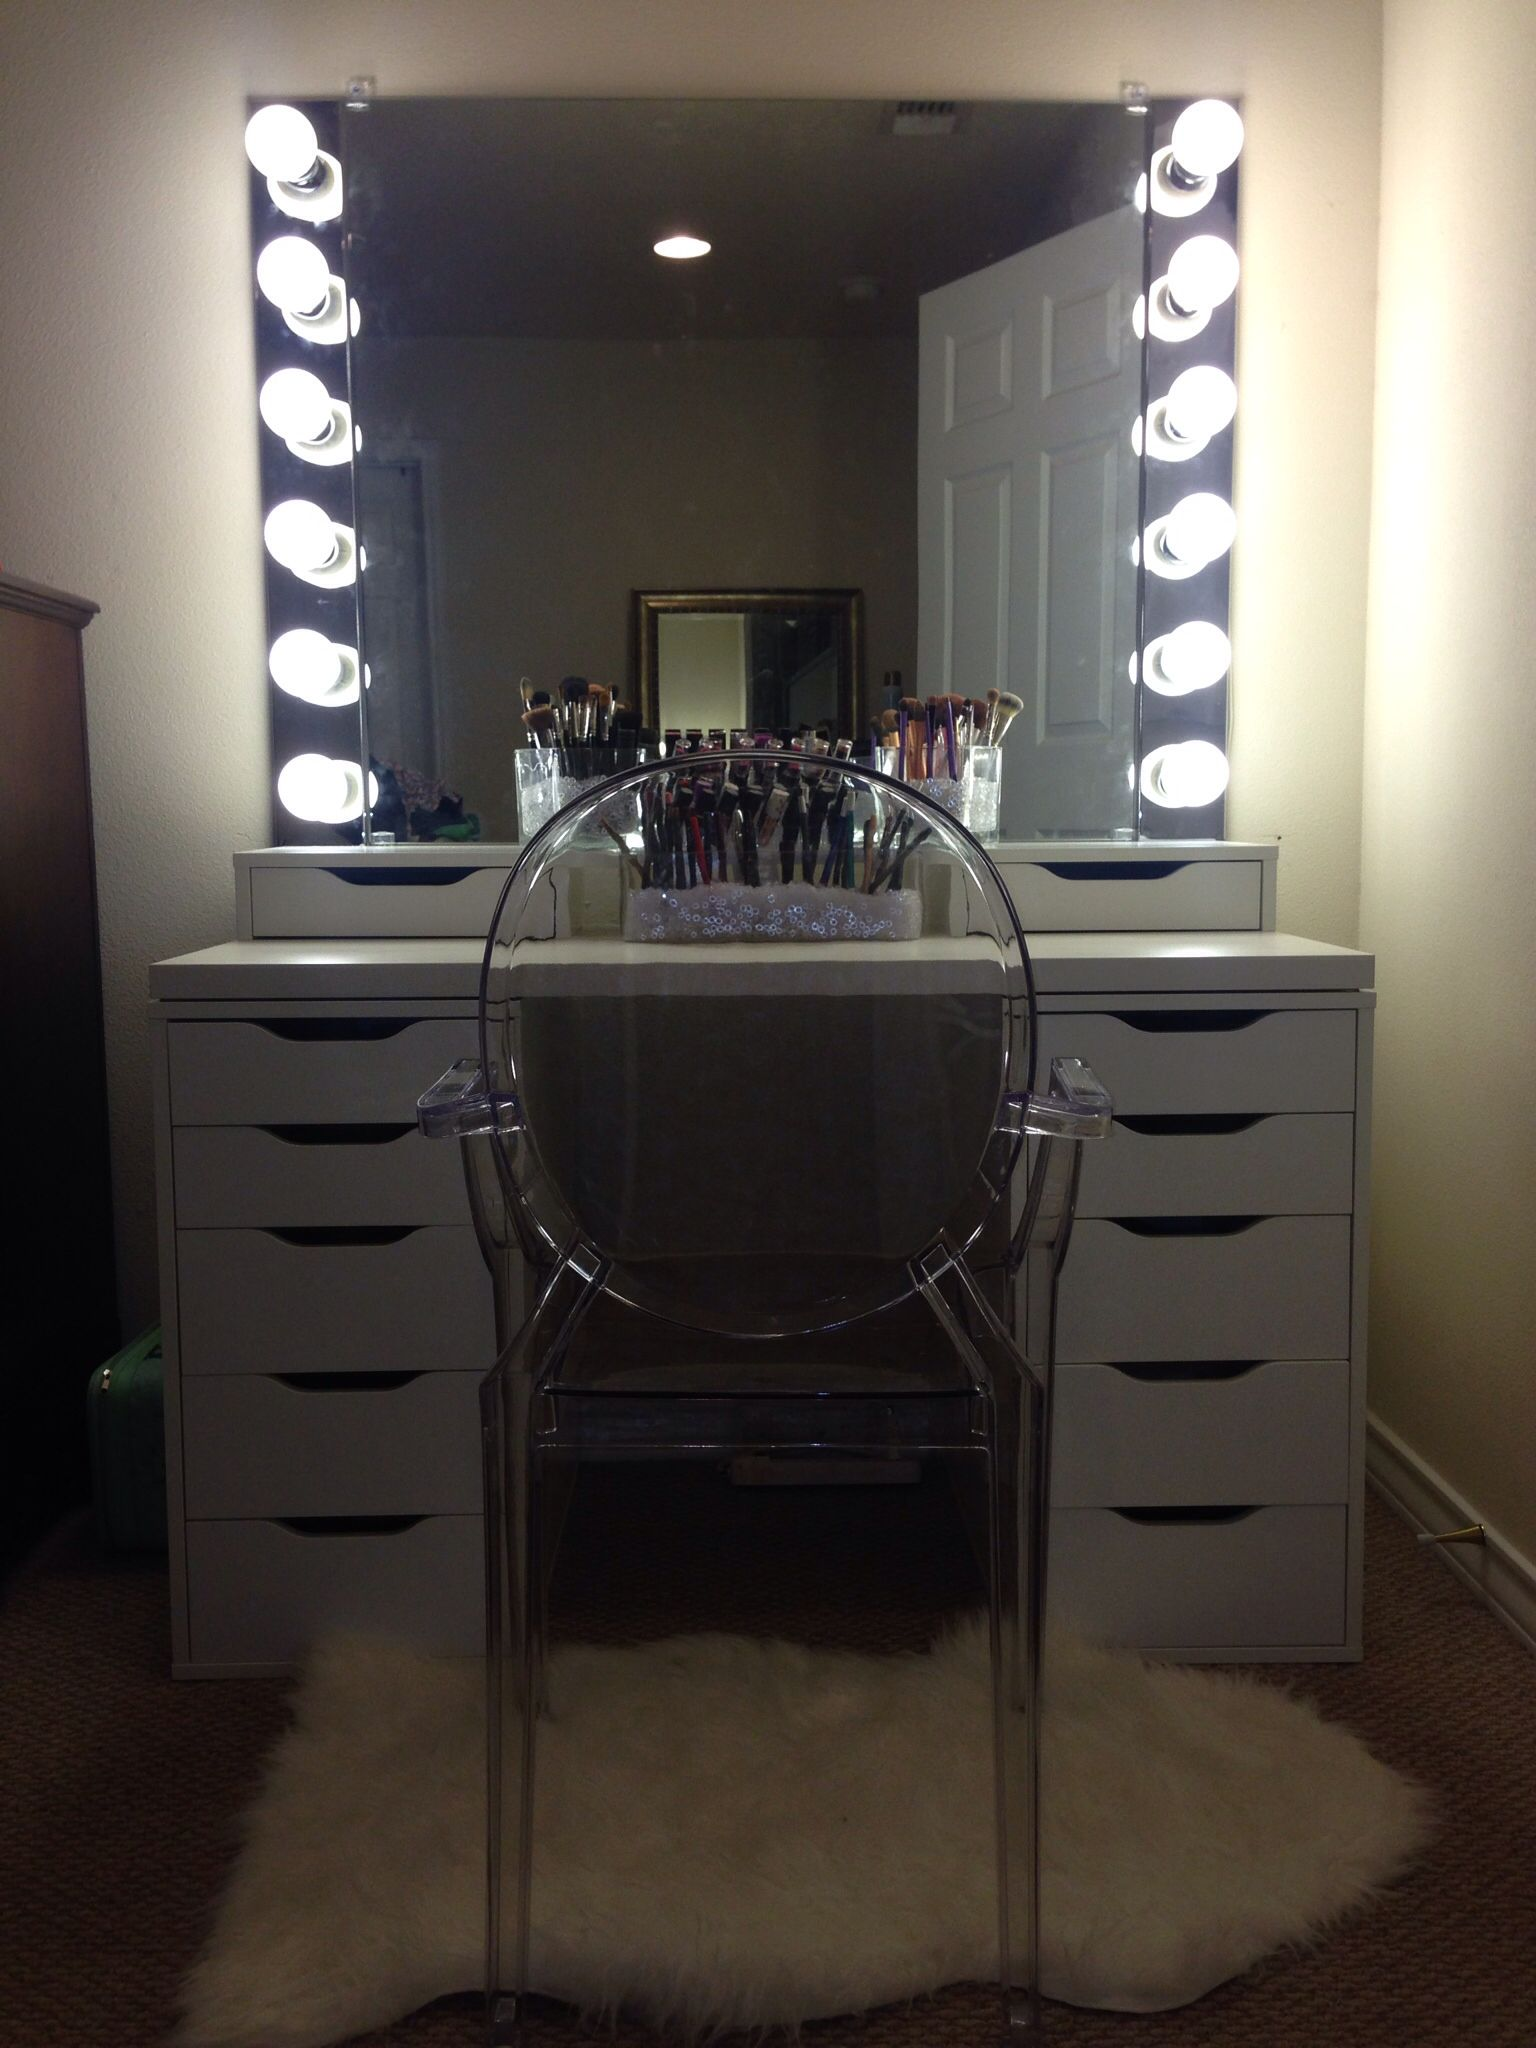 DIY Vanity Mirror With Lights For Bathroom And Makeup Station - Beautiful diy ikea mirrors hacks to try